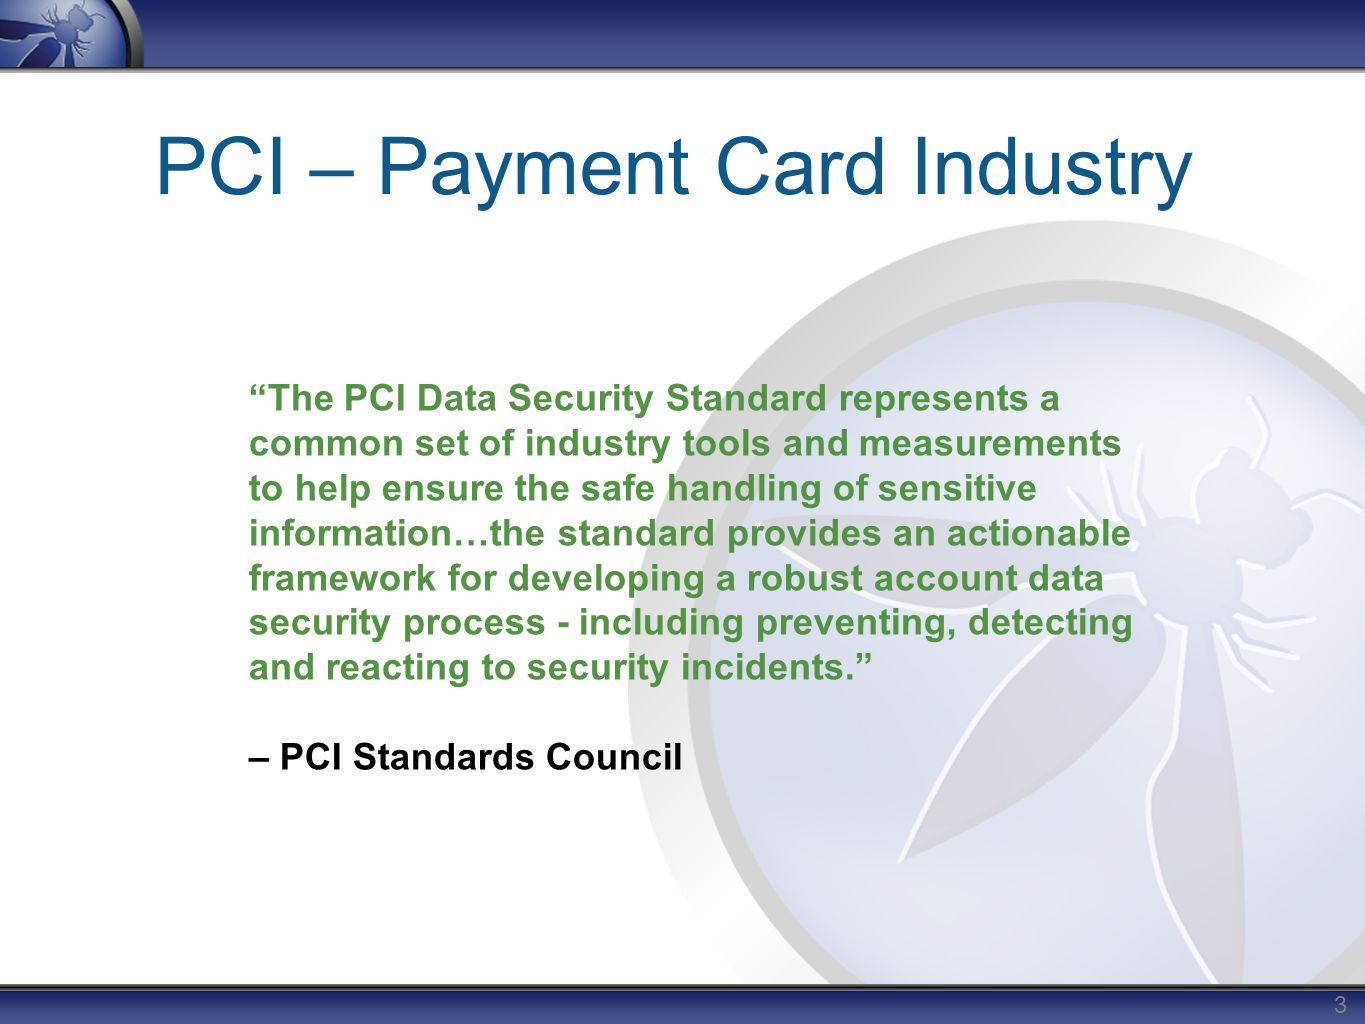 Pci Dss And Padss Owasp Education Nishi Kumar Computer. Structural Engineering Certificate. Colleges In Jacksonville Credit Card Fixed Apr. How To Obtain A Photographic Memory. Locksmith Greenville Sc New York Maid Service. Teeters Plumbing Dallas Party Banner Printing. Online Nutritionist Certification Programs. Technology In Computers Colleges In Monroe La. Free Online Fax Machine Hosting Reseller Plan